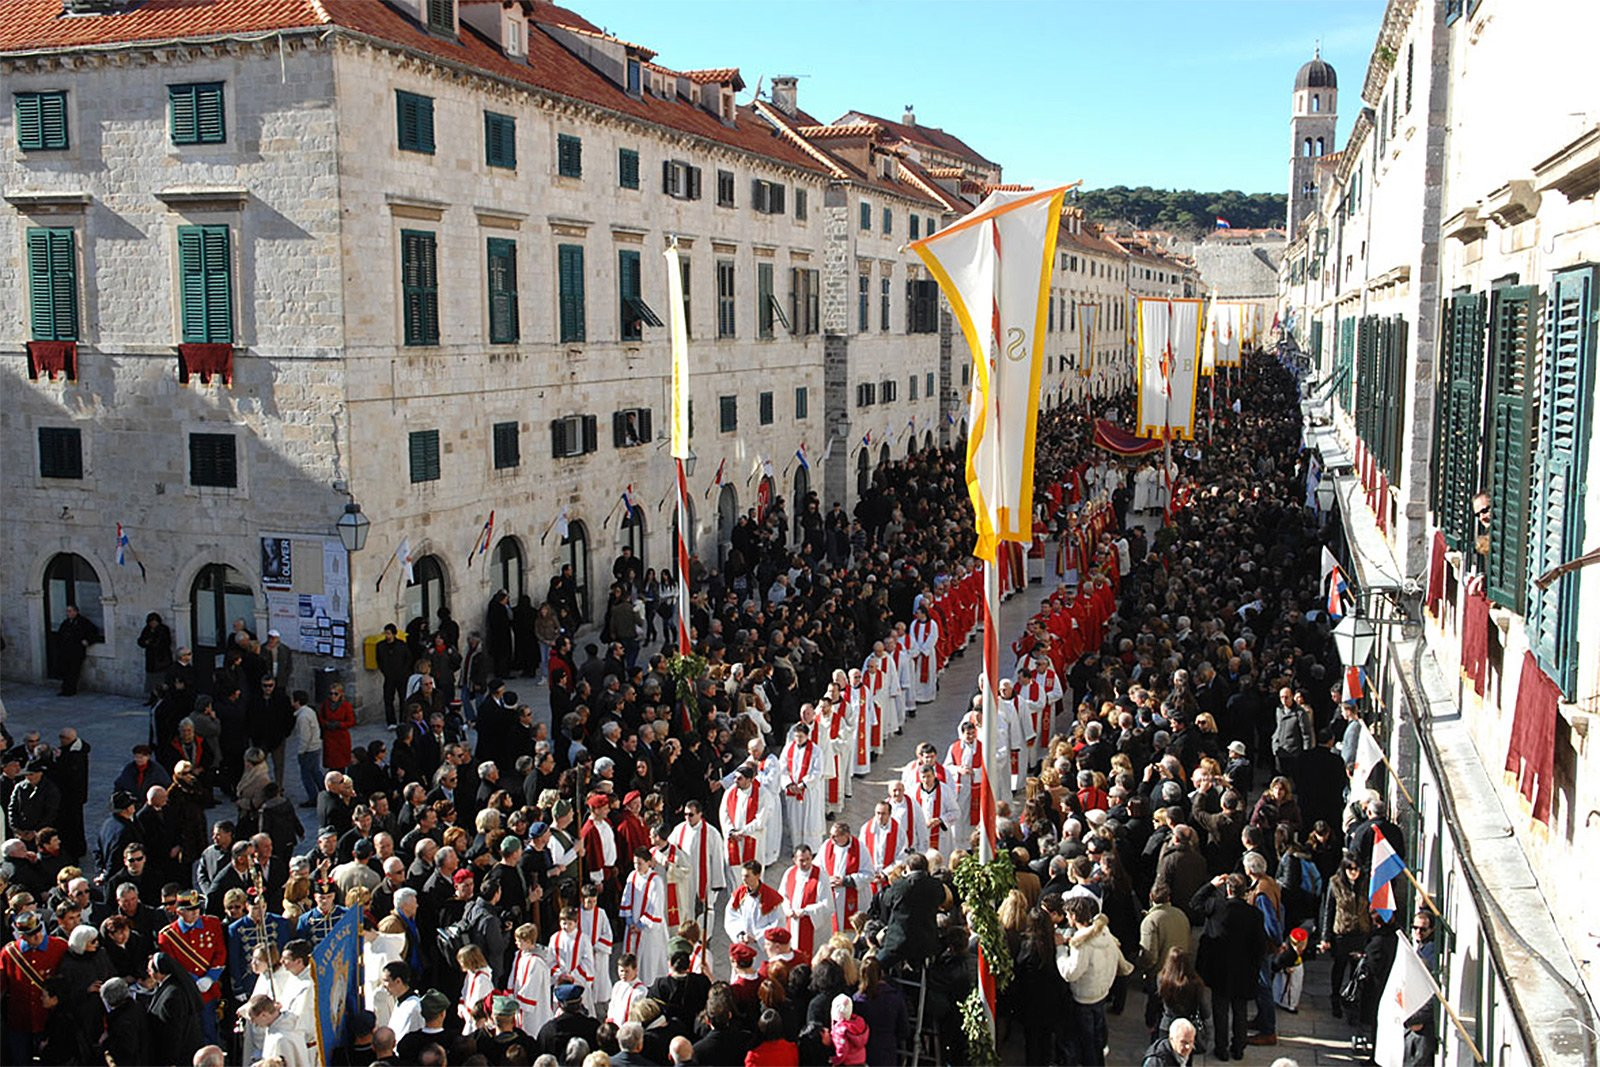 How to visit the Festivity of Saint Blaise in Dubrovnik